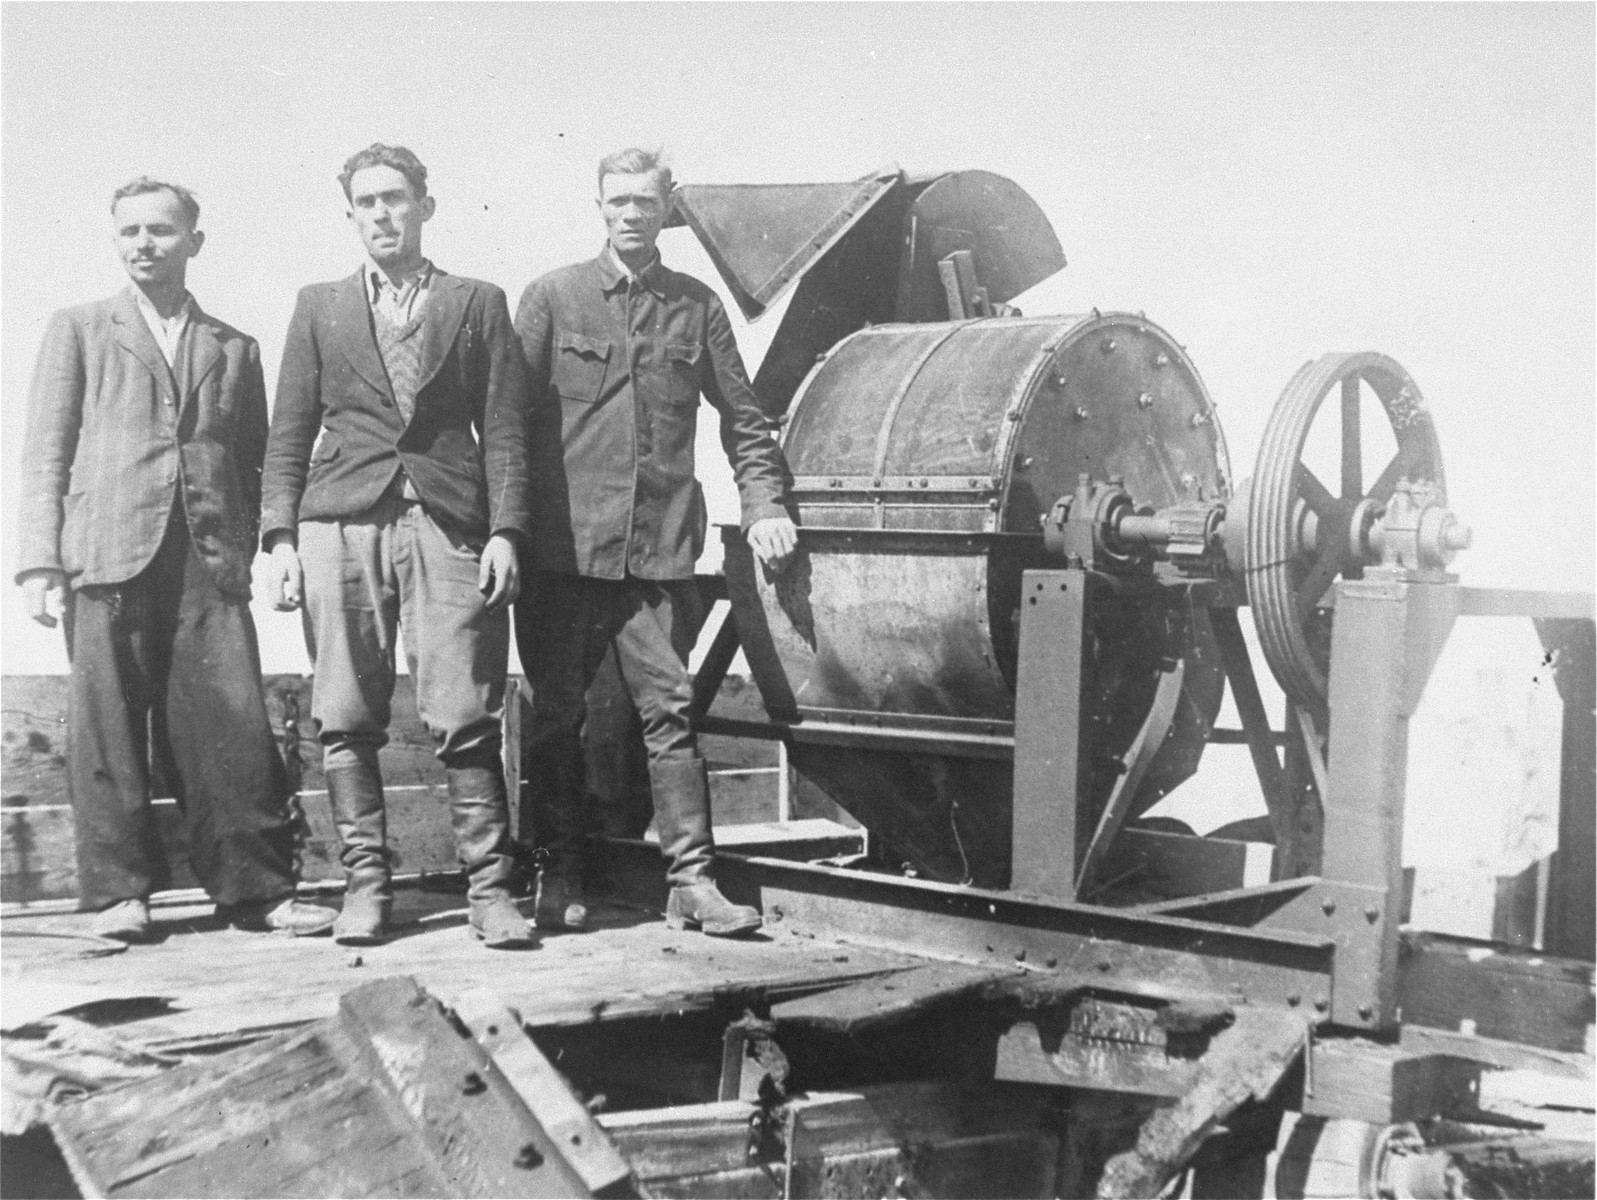 Jewish prisoners forced to work for a Sonderkommando 1005 unit pose next to a bone crushing machine in the Janowska concentration camp.  Pictured from left to right are: unknown, David Manusevitz, and Moses Korn.  This photograph ws taken soon after liberation for the Extraordinary Commission or the Red Army.